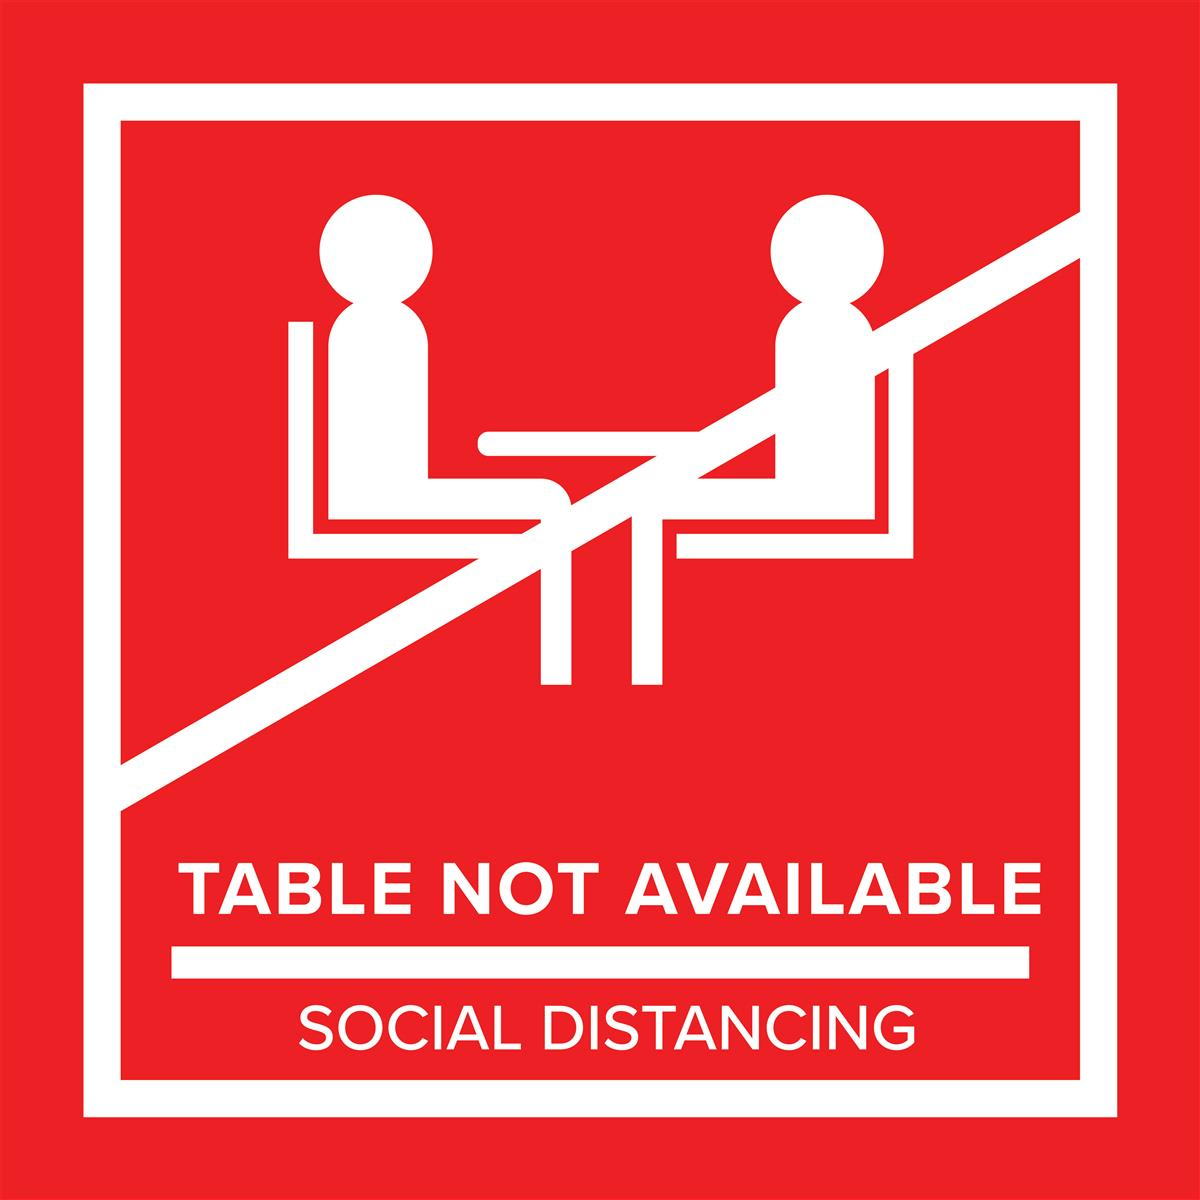 Red removable no seating table sticker